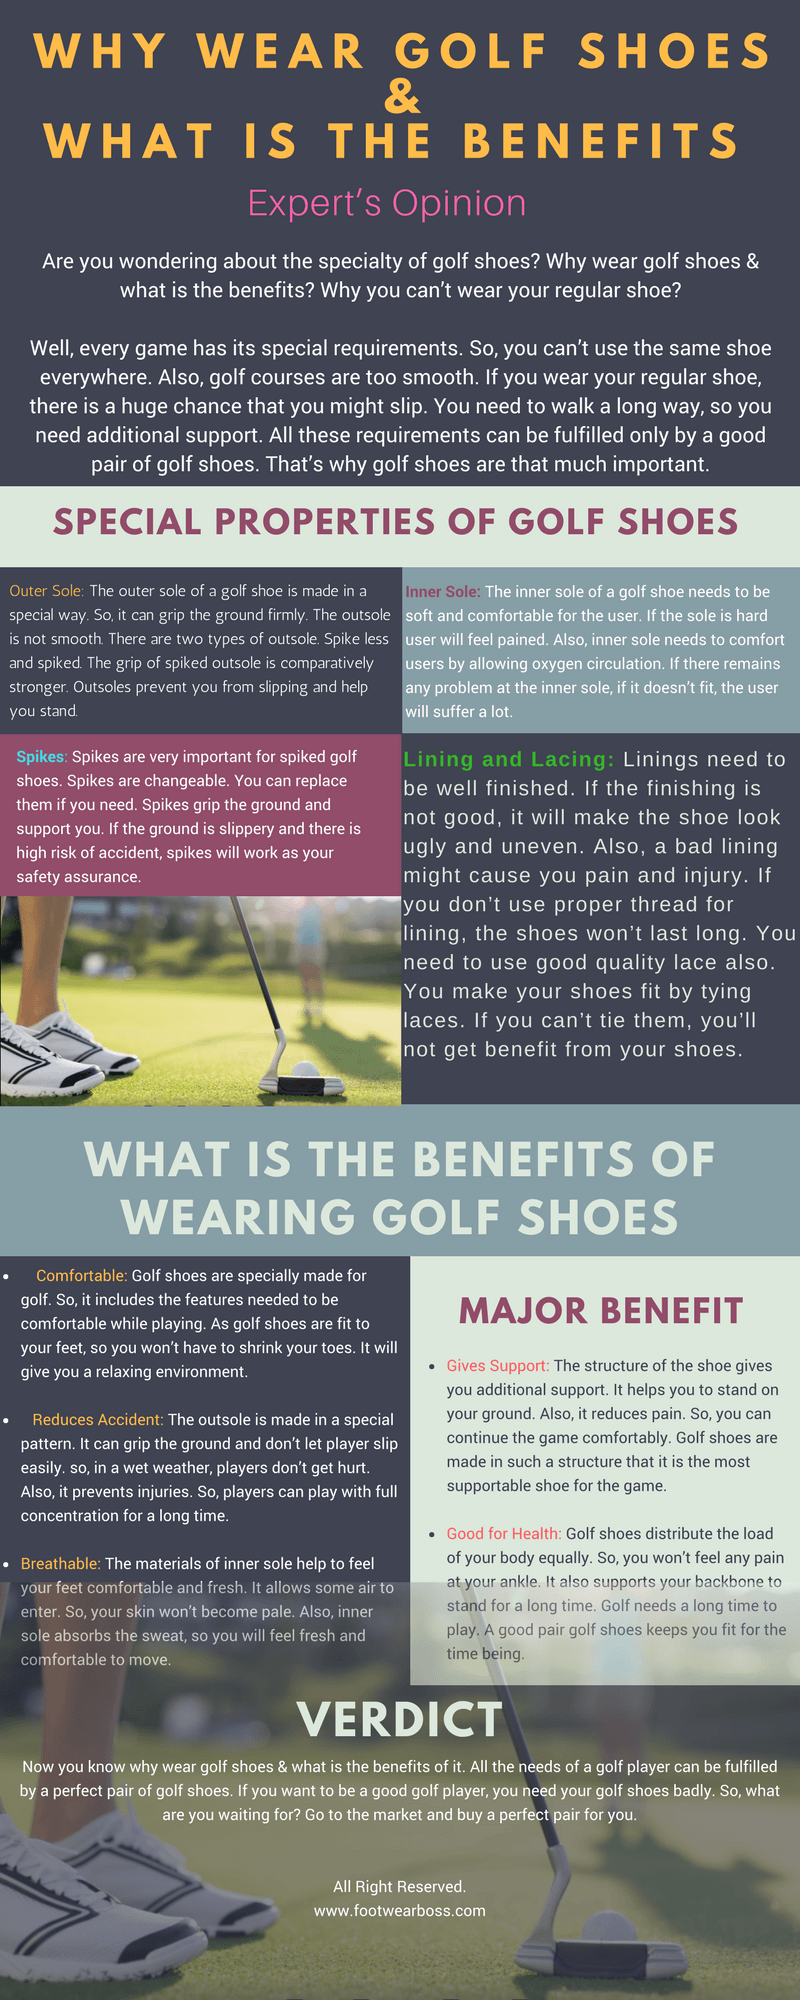 Why Wear Golf Shoes With Benefits